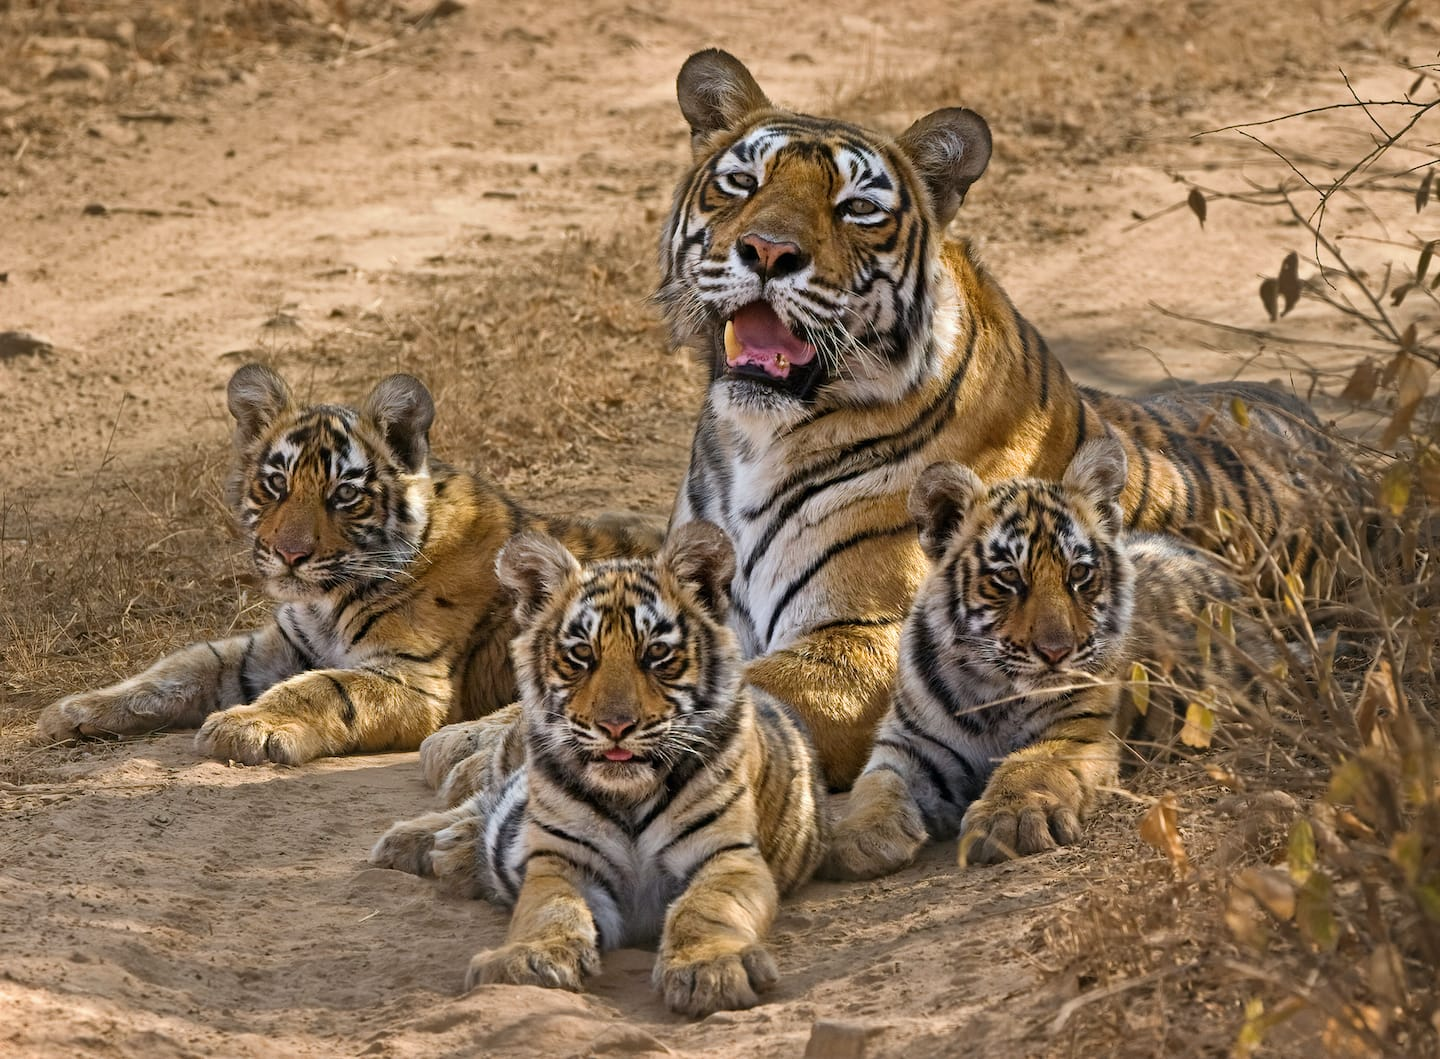 """Machali and her three cubs (T-18 left, T-19 centre, T-17 right), spotted at Ranthambore National Park. Photo: Aditya """"Dicky"""" Singh, 2007"""